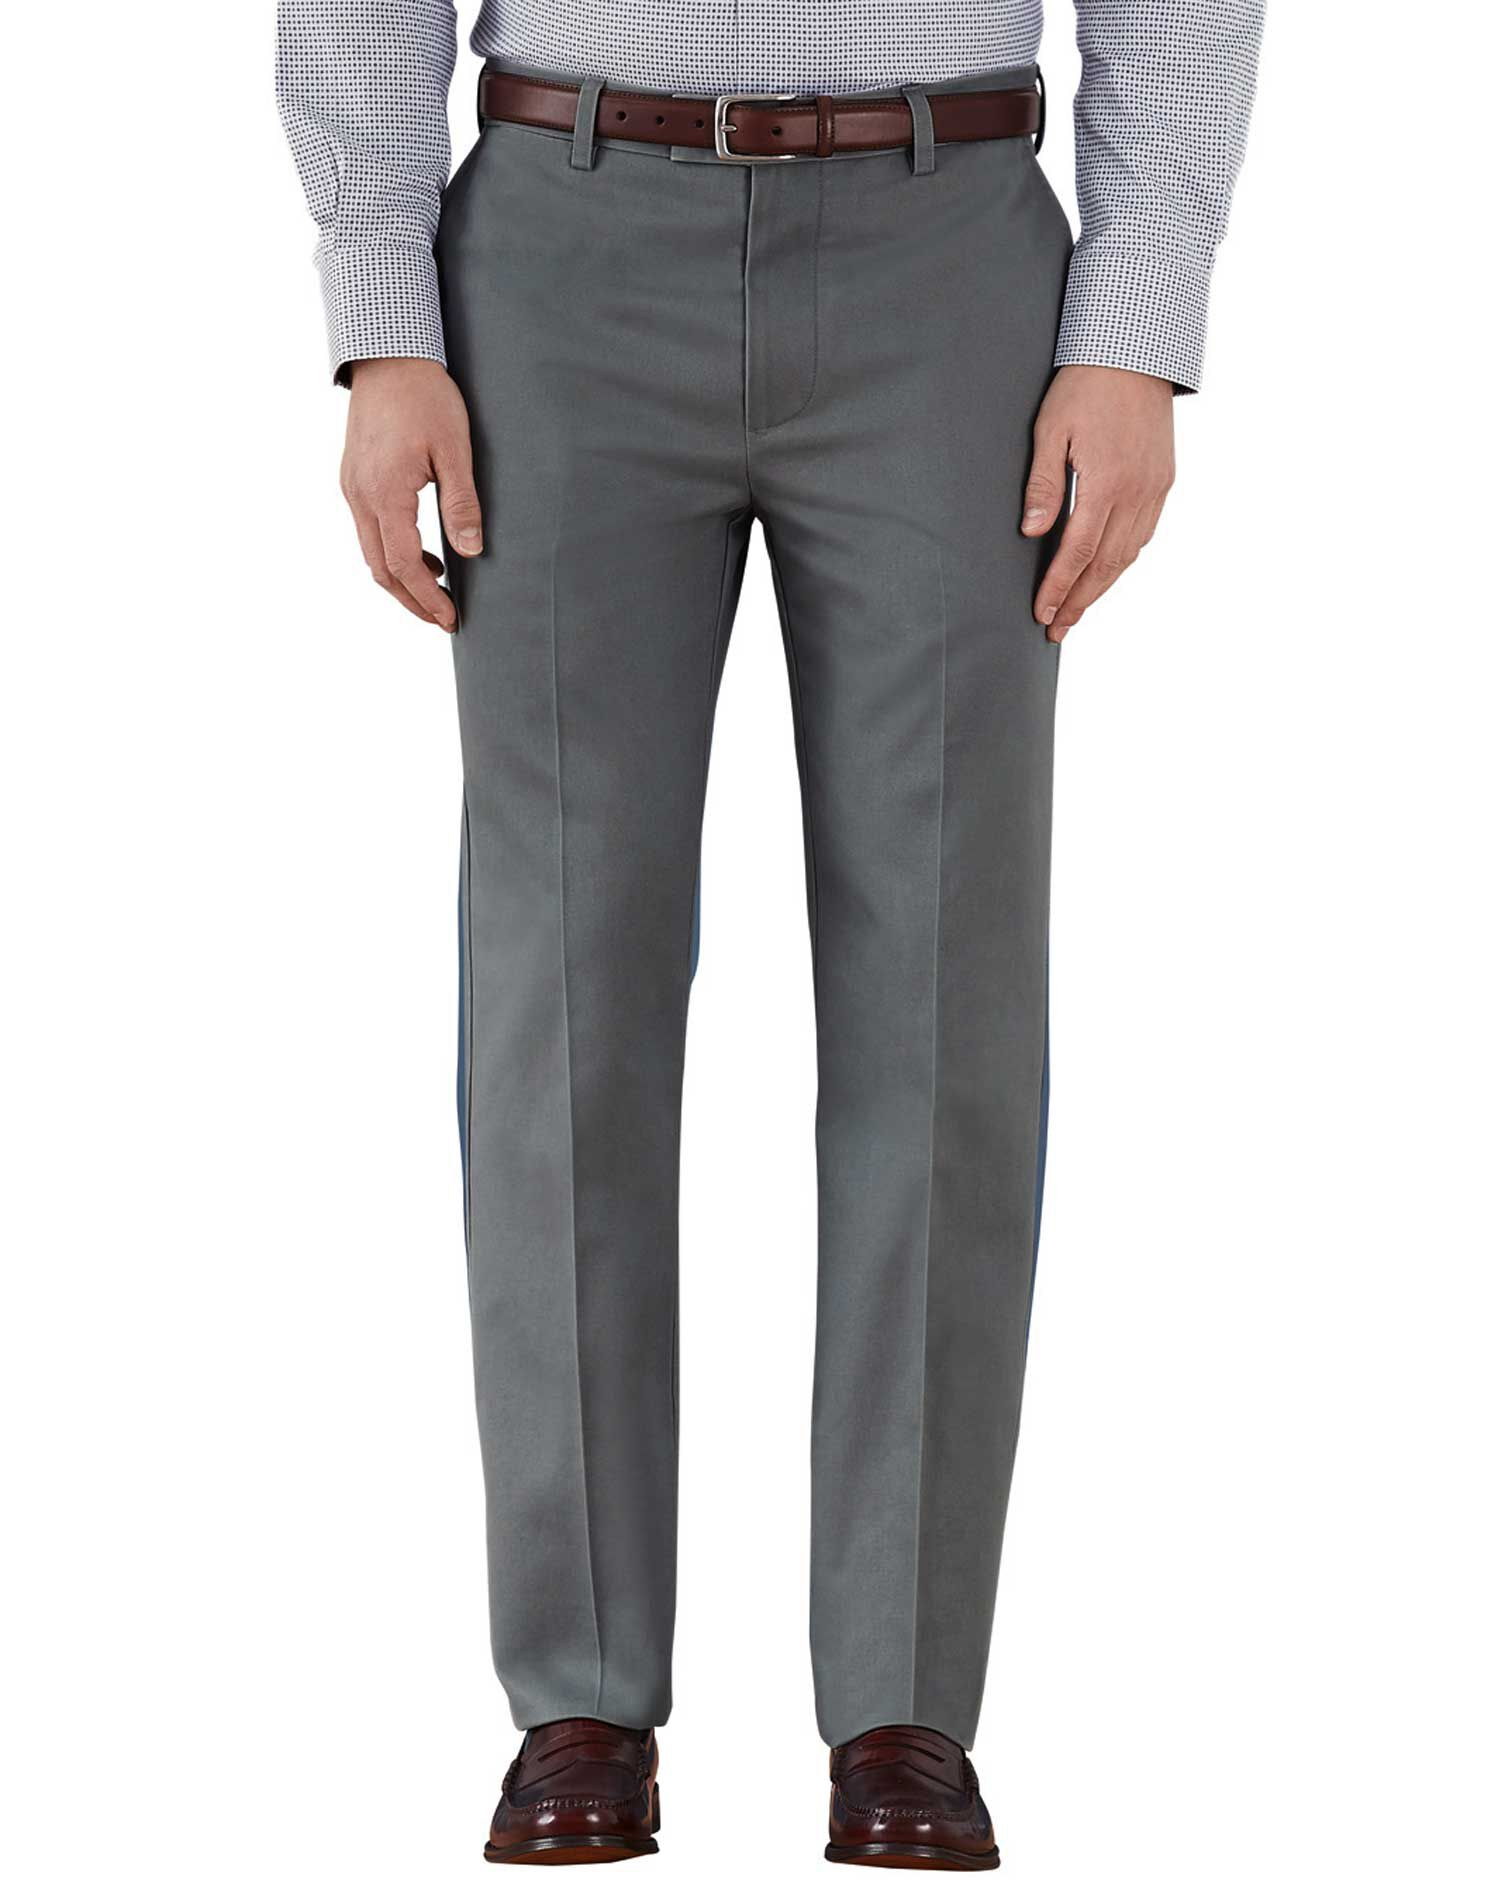 Grey Slim Fit Flat Front Non-Iron Cotton Chino Trousers Size W38 L30 by Charles Tyrwhitt